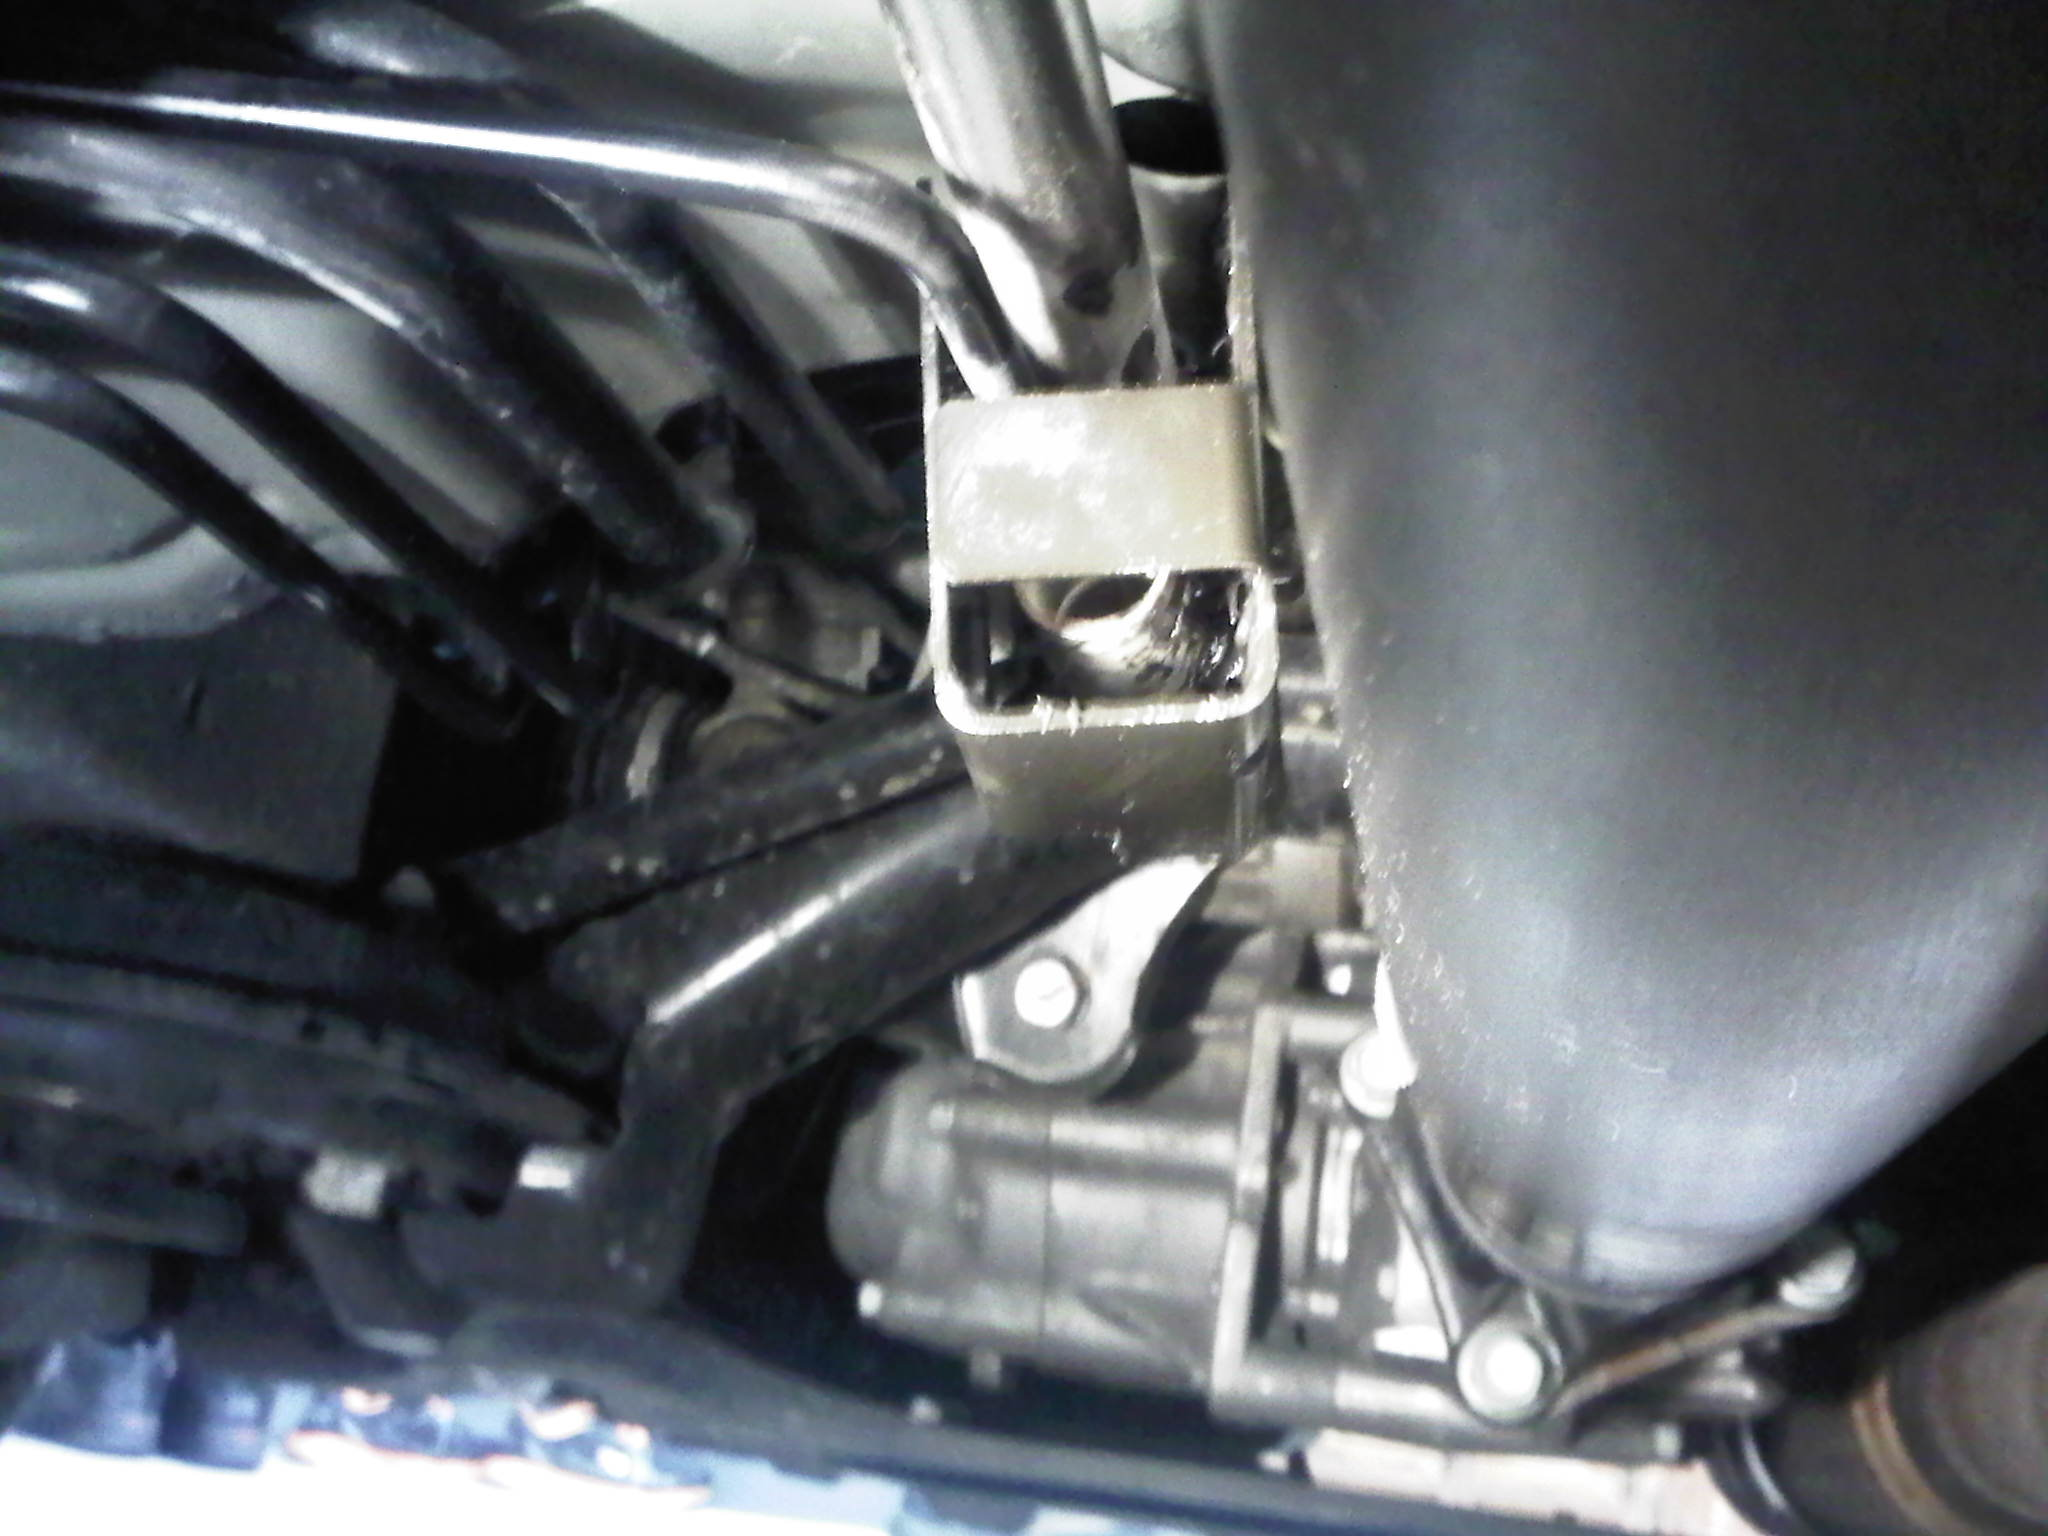 Heat Shield Type Rattle on downshift-mdx-bracket.jpg